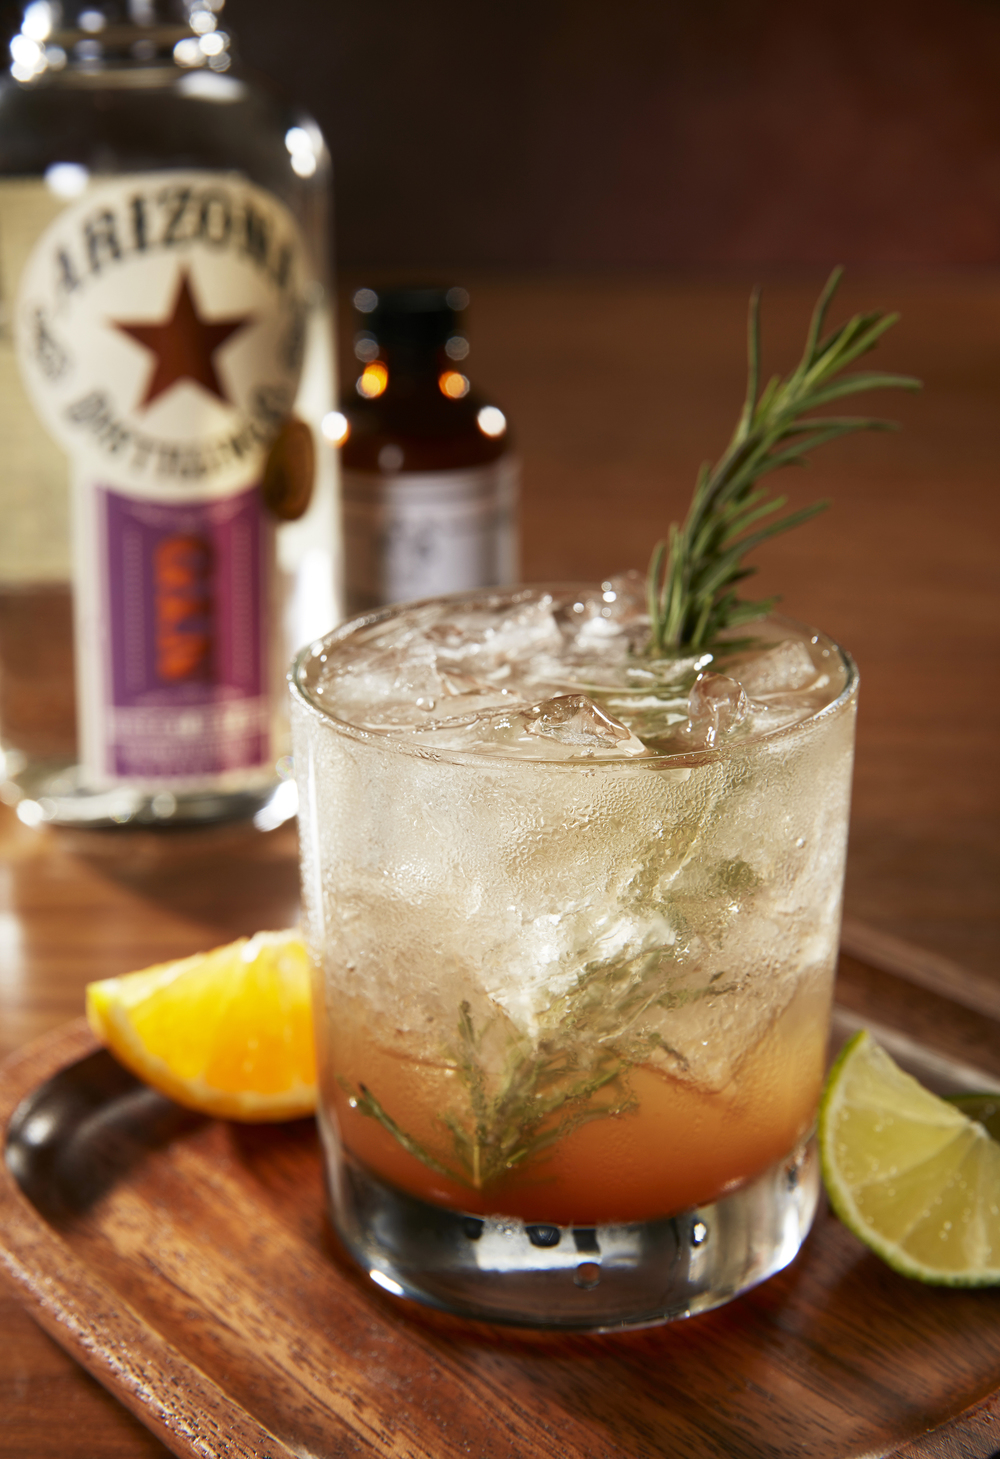 The AZGNT, a fresh take on a classic Gin & Tonic